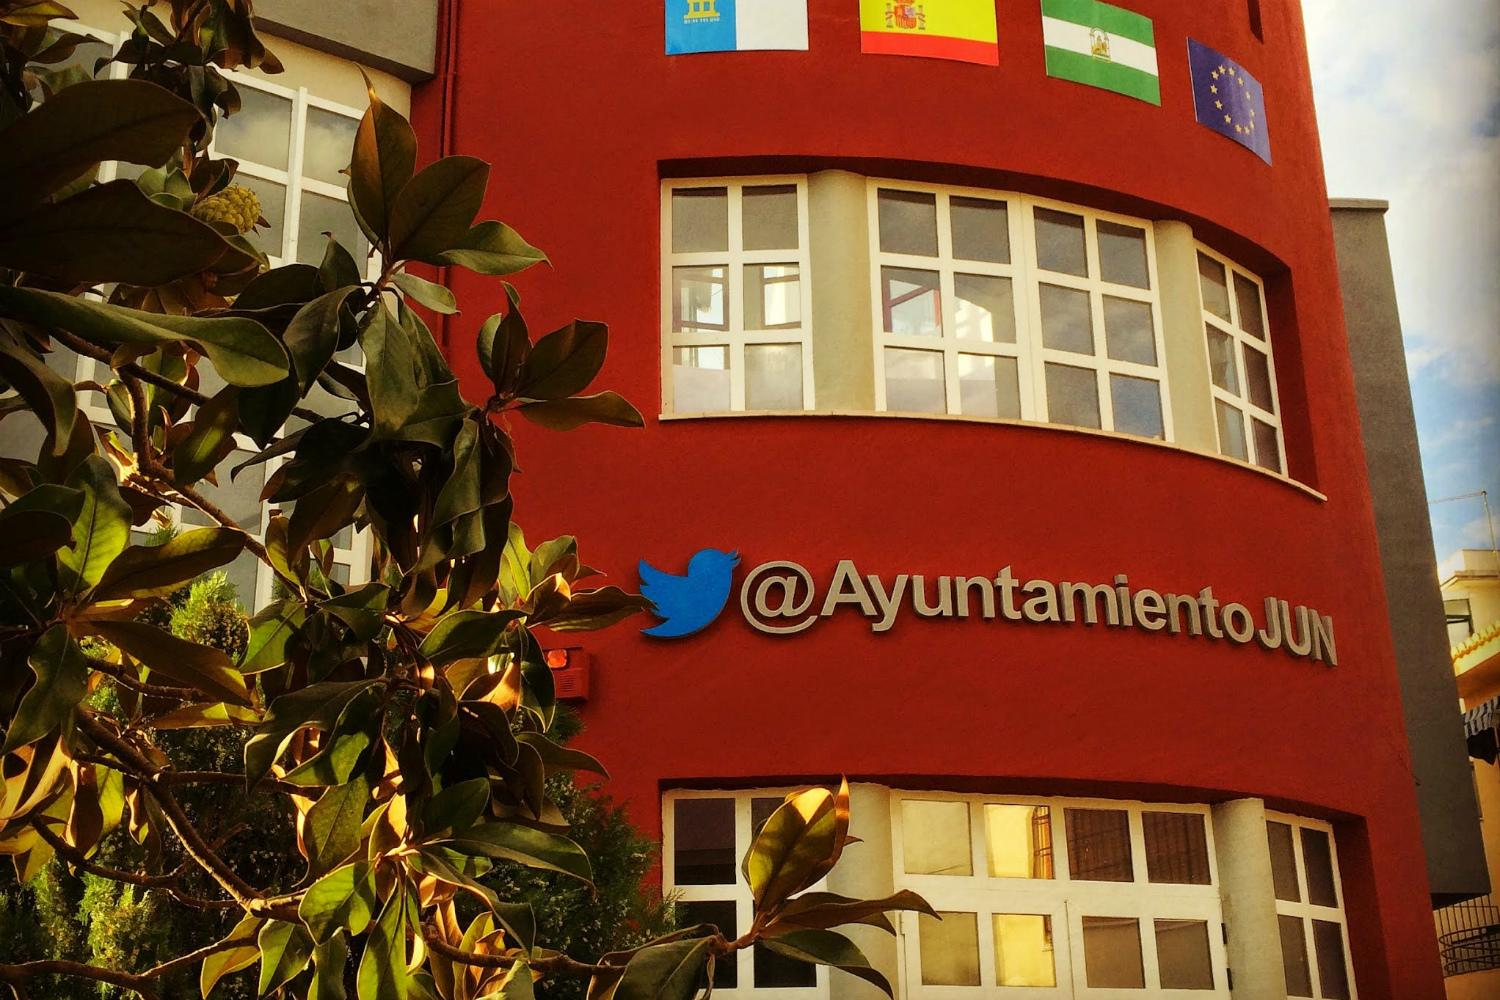 This tiny Spanish town uses Twitter to run everything, and ...